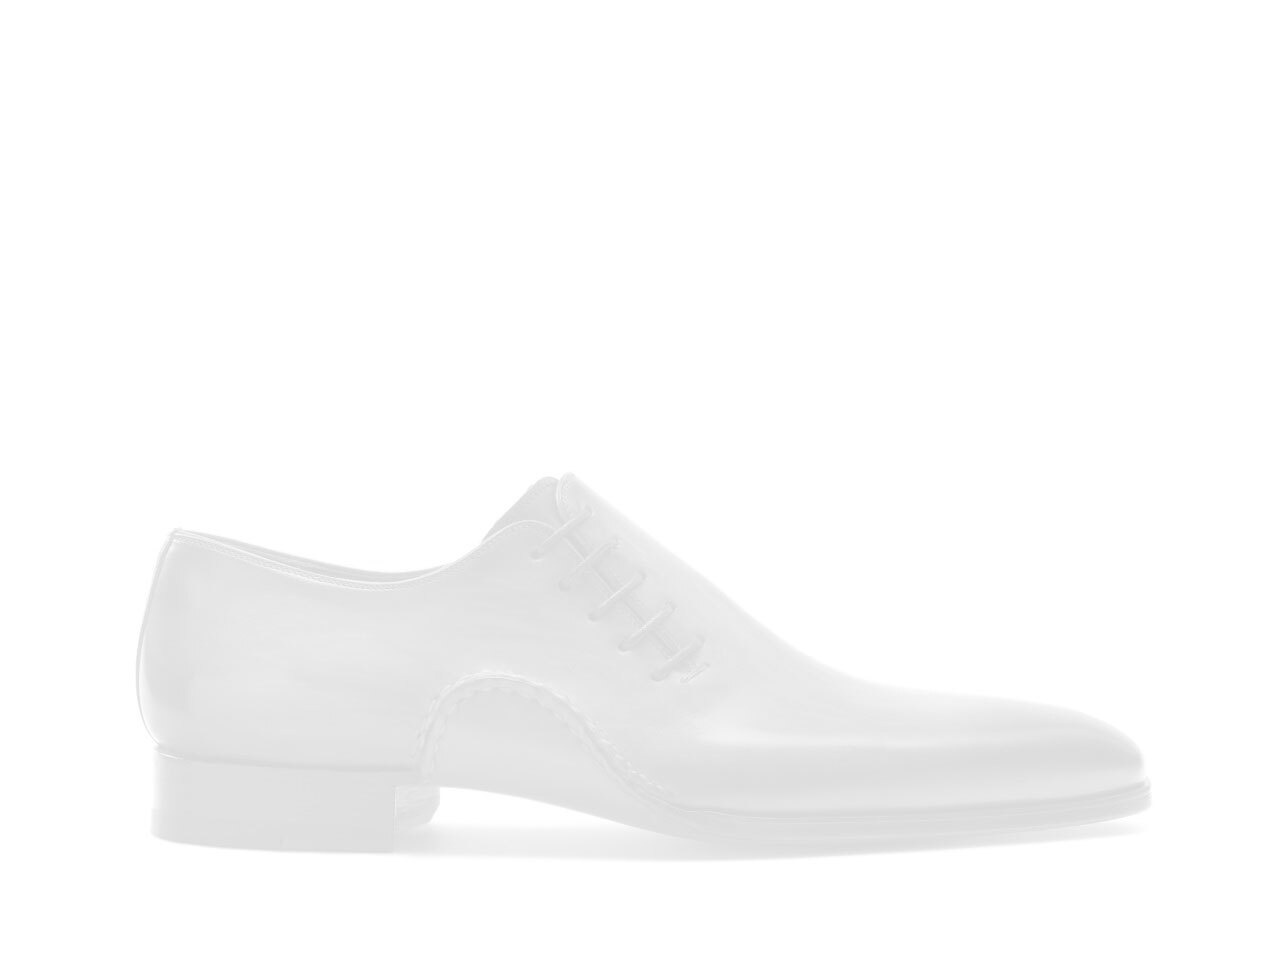 Side view of the Magnanni Rodgers Cuero Men's Comfort Dress Shoes